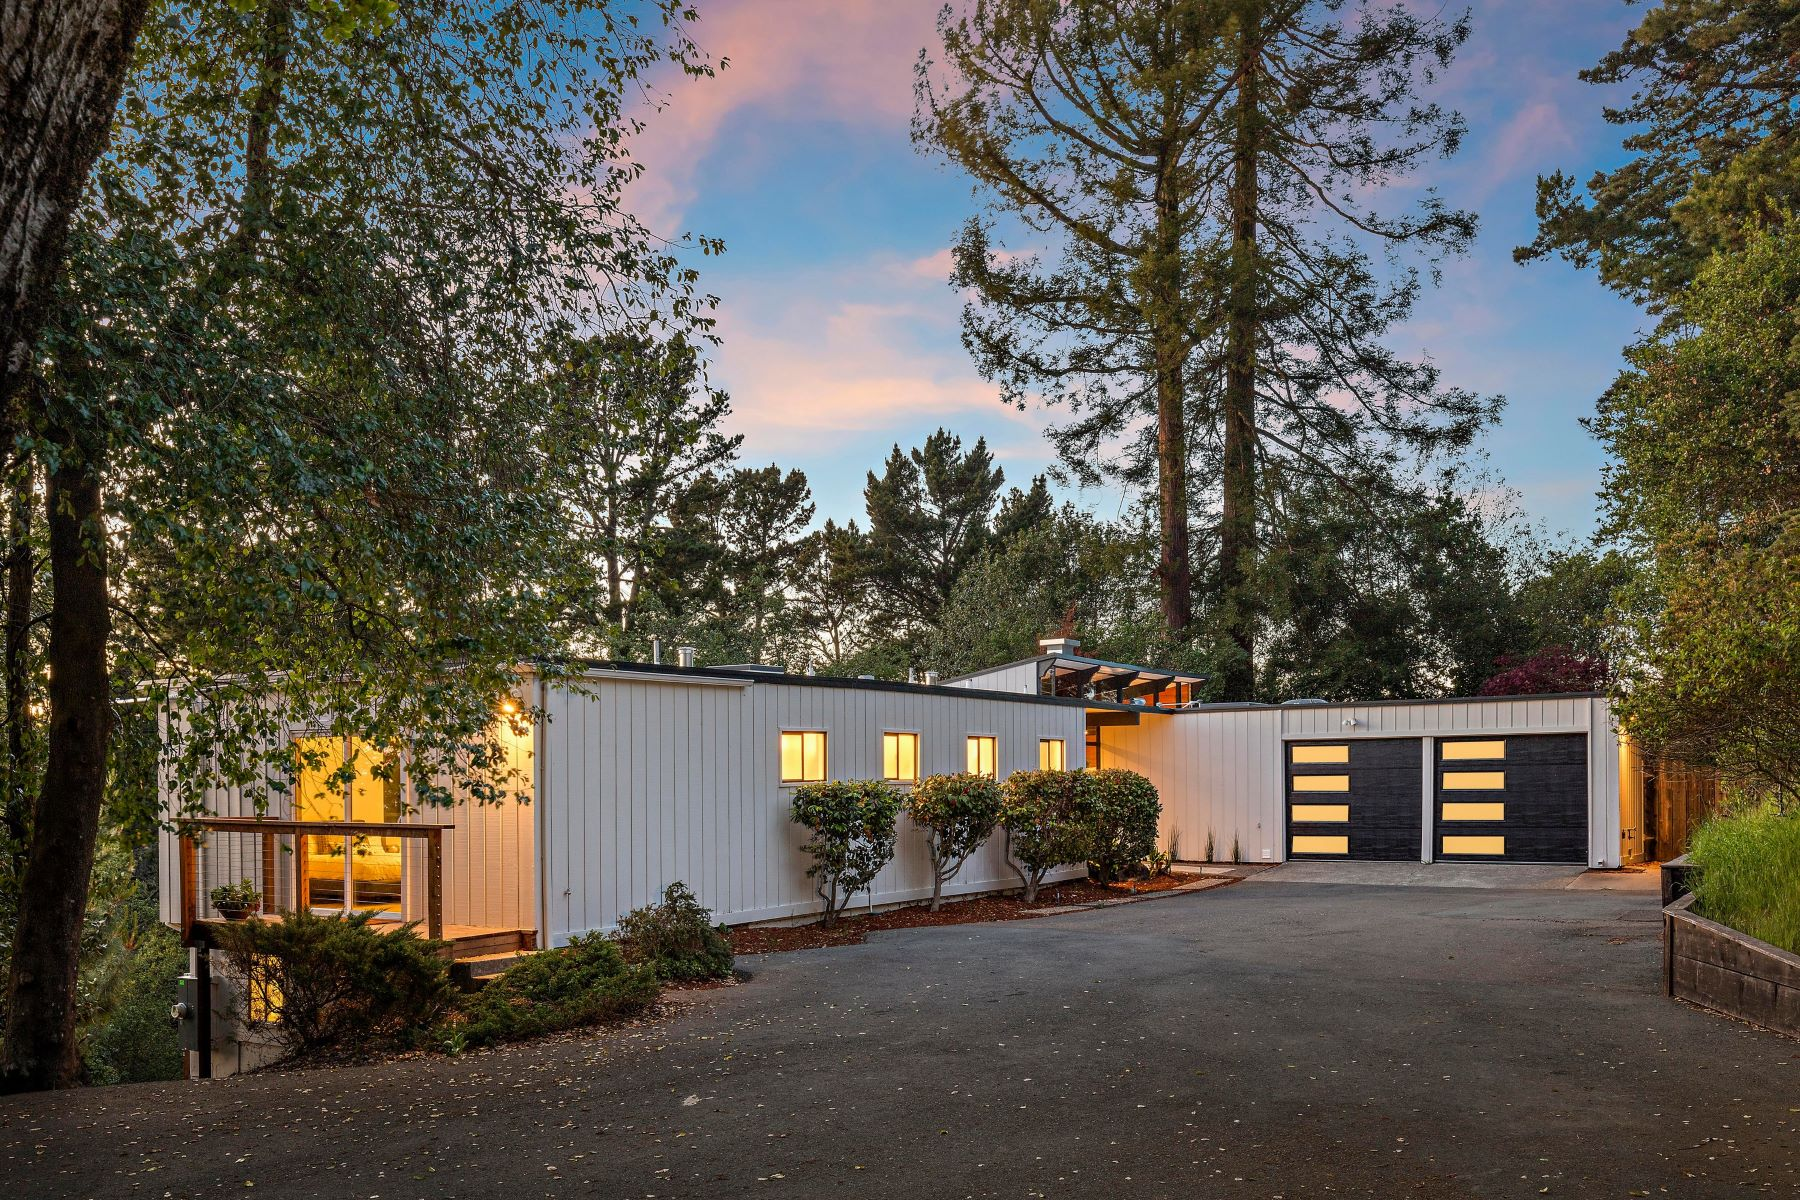 Single Family Homes for Sale at Updated Contemporary Urban Retreat 13180 Skyline Boulevard Oakland, California 94619 United States